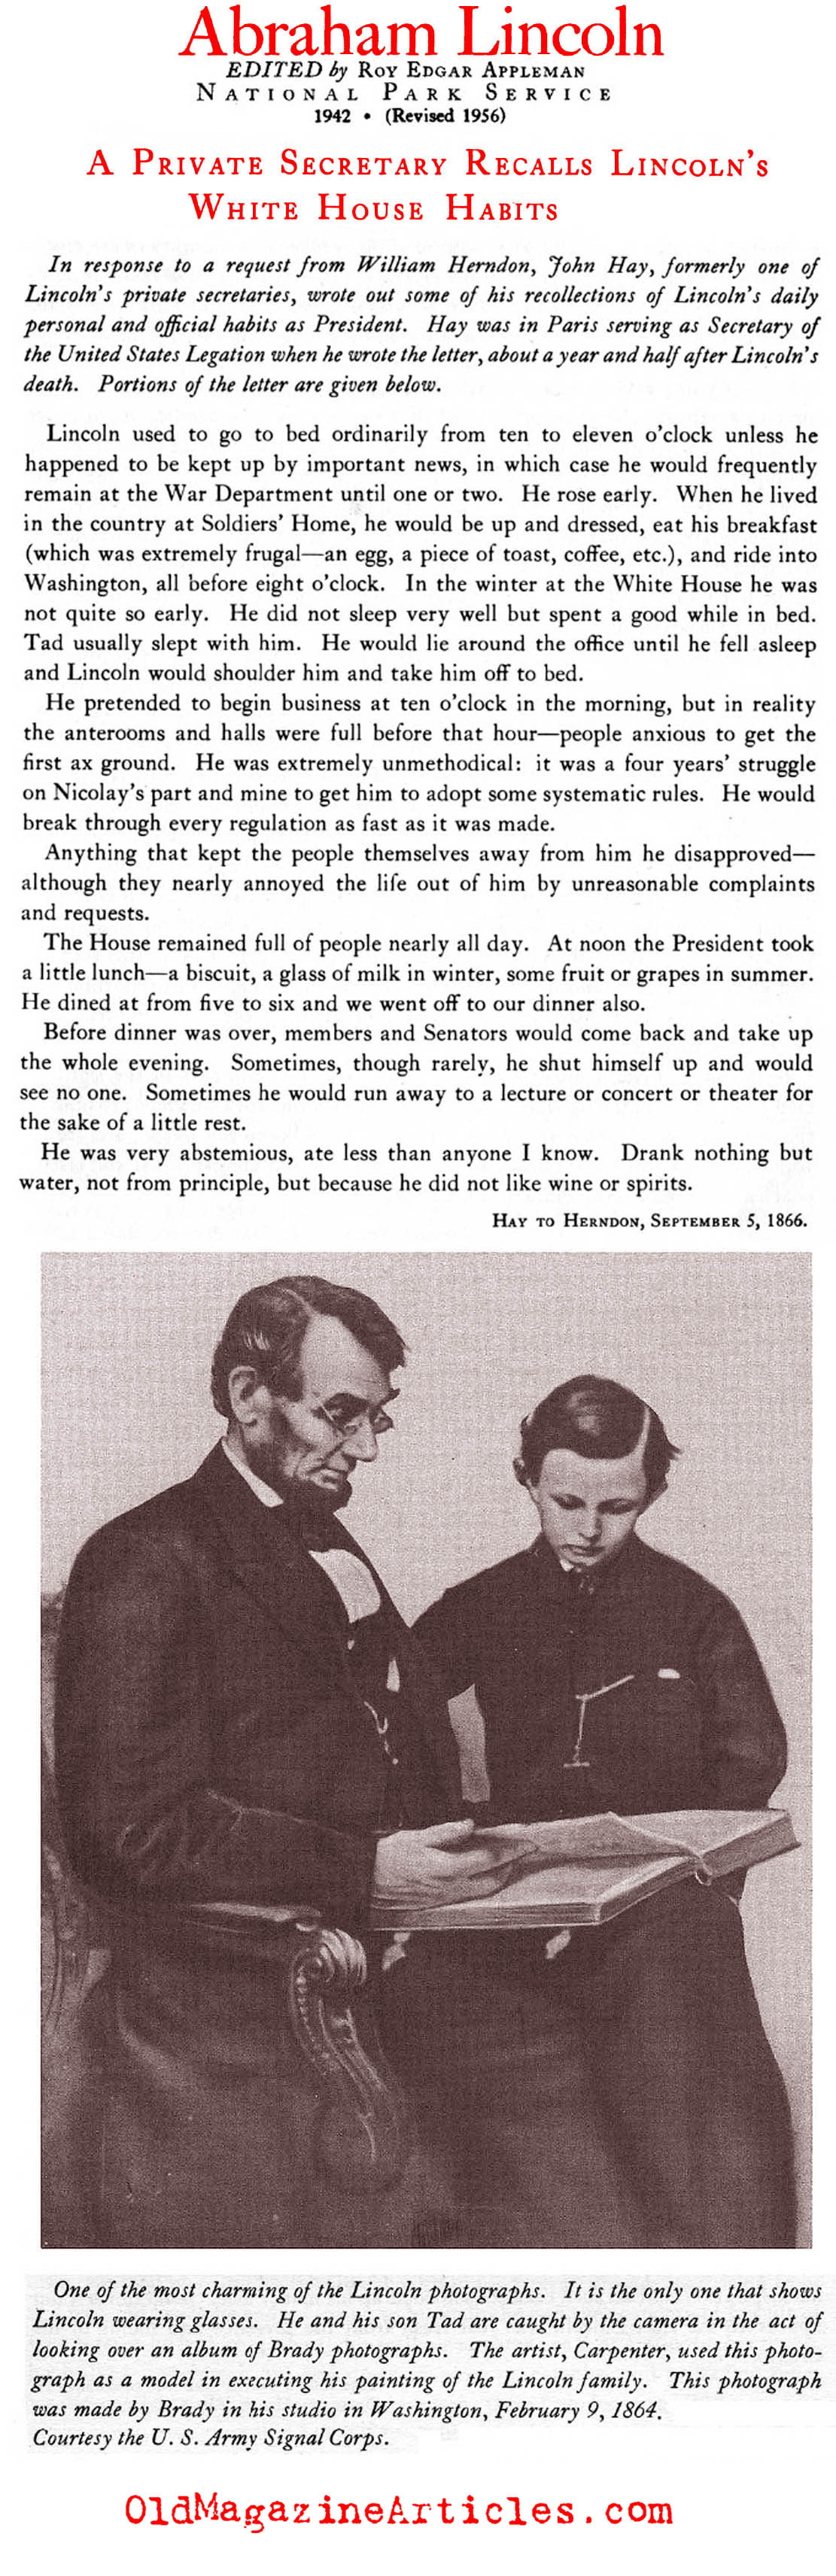 John Hay Recalls Lincoln (National Park Service, 1956)